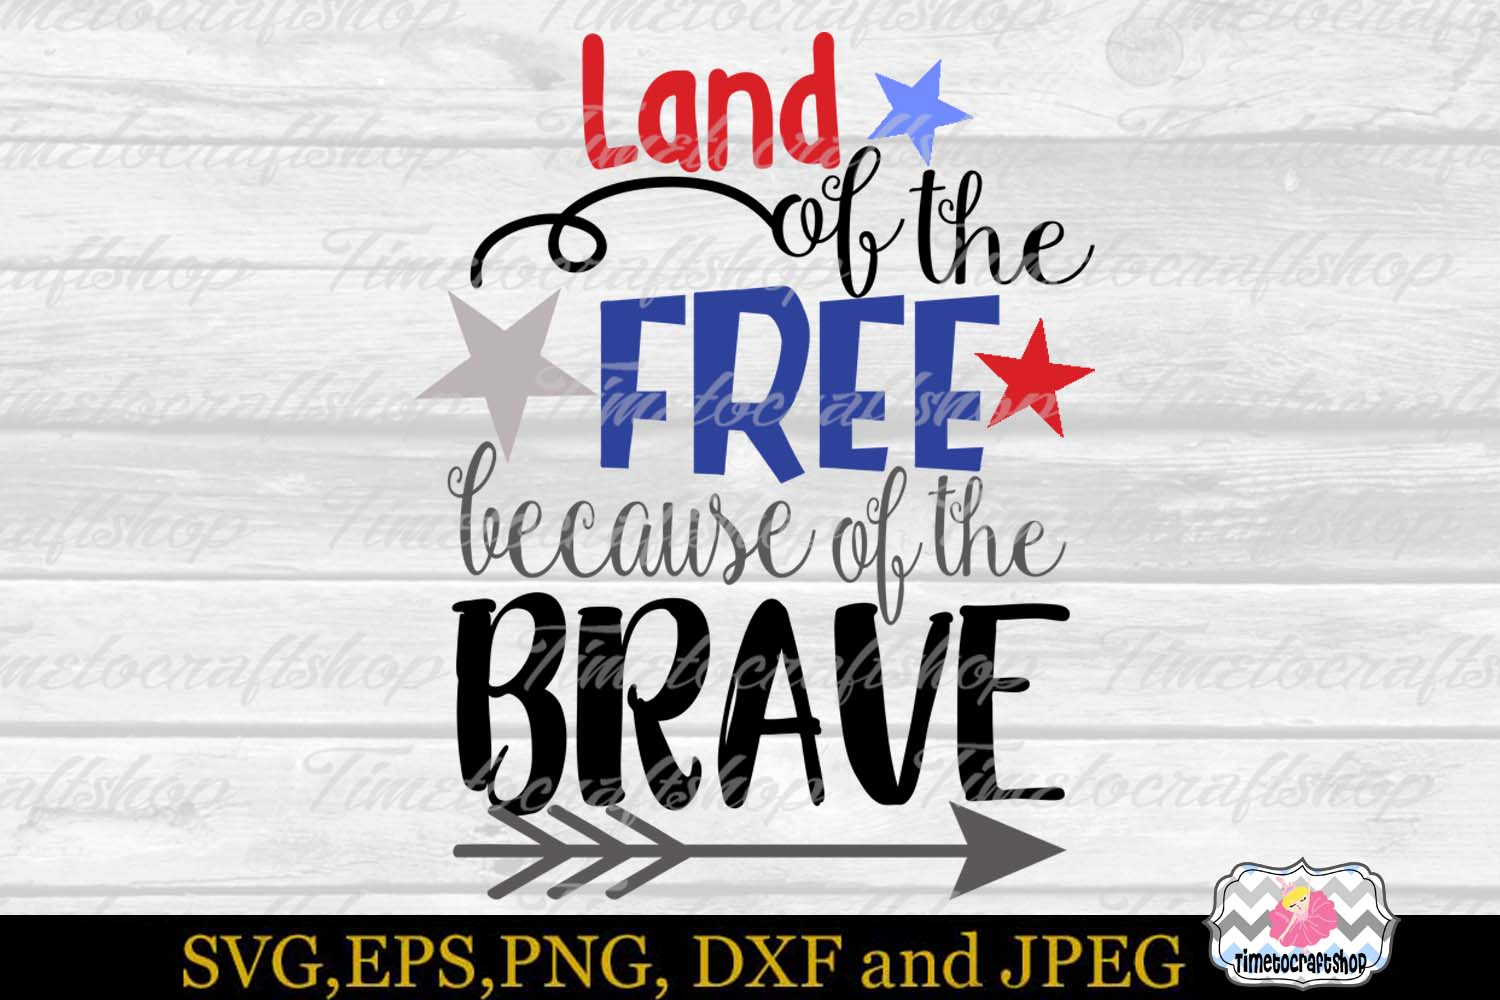 SVG EPS JPG DXF PNG Land of the Free because of the brave example image 2